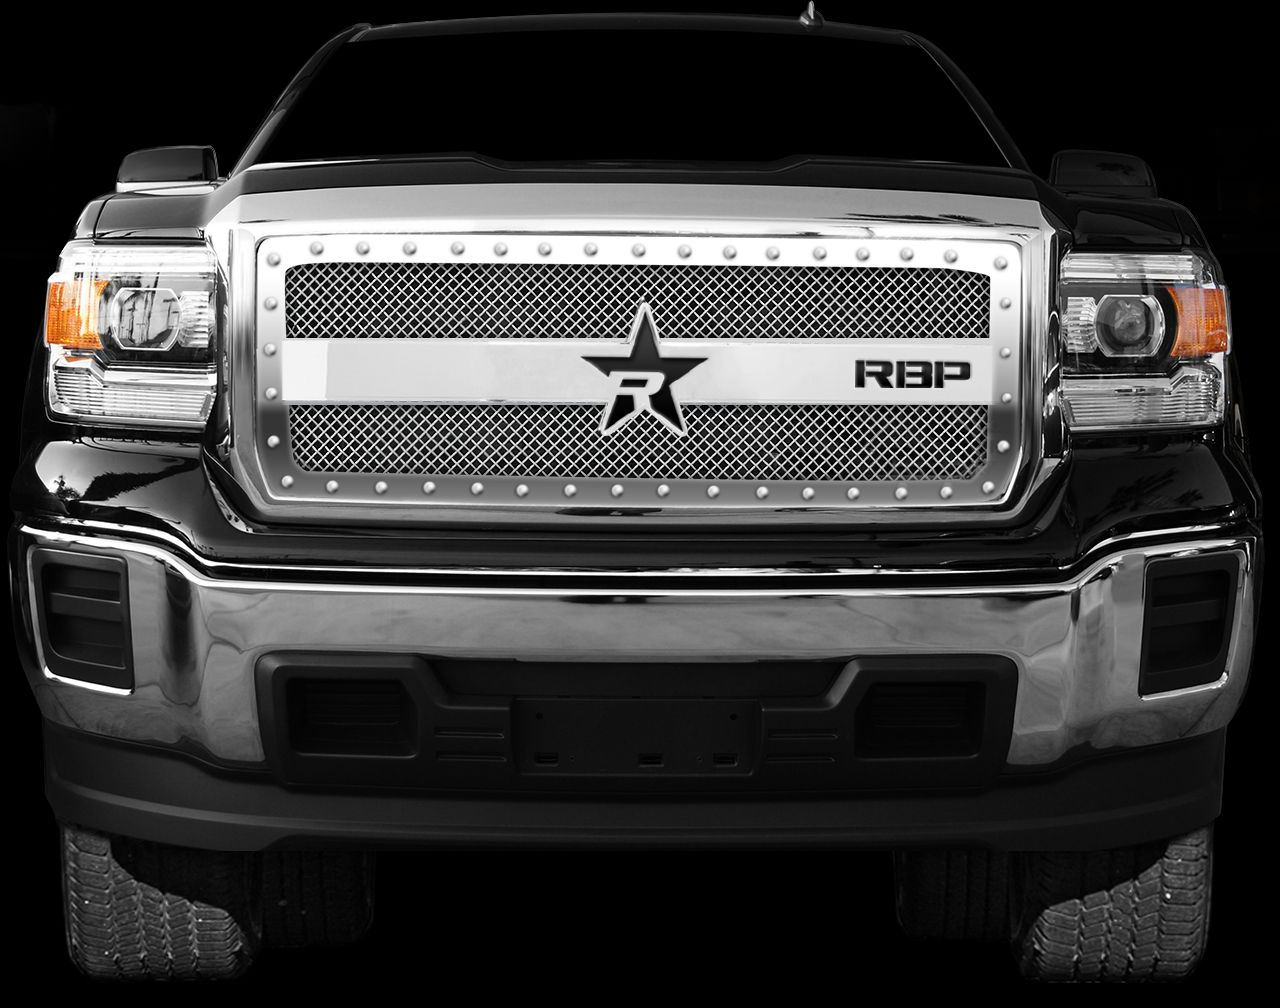 rbp rx 3 frame grille chrome 1 piece 2015 2016 gmc sierra. Black Bedroom Furniture Sets. Home Design Ideas